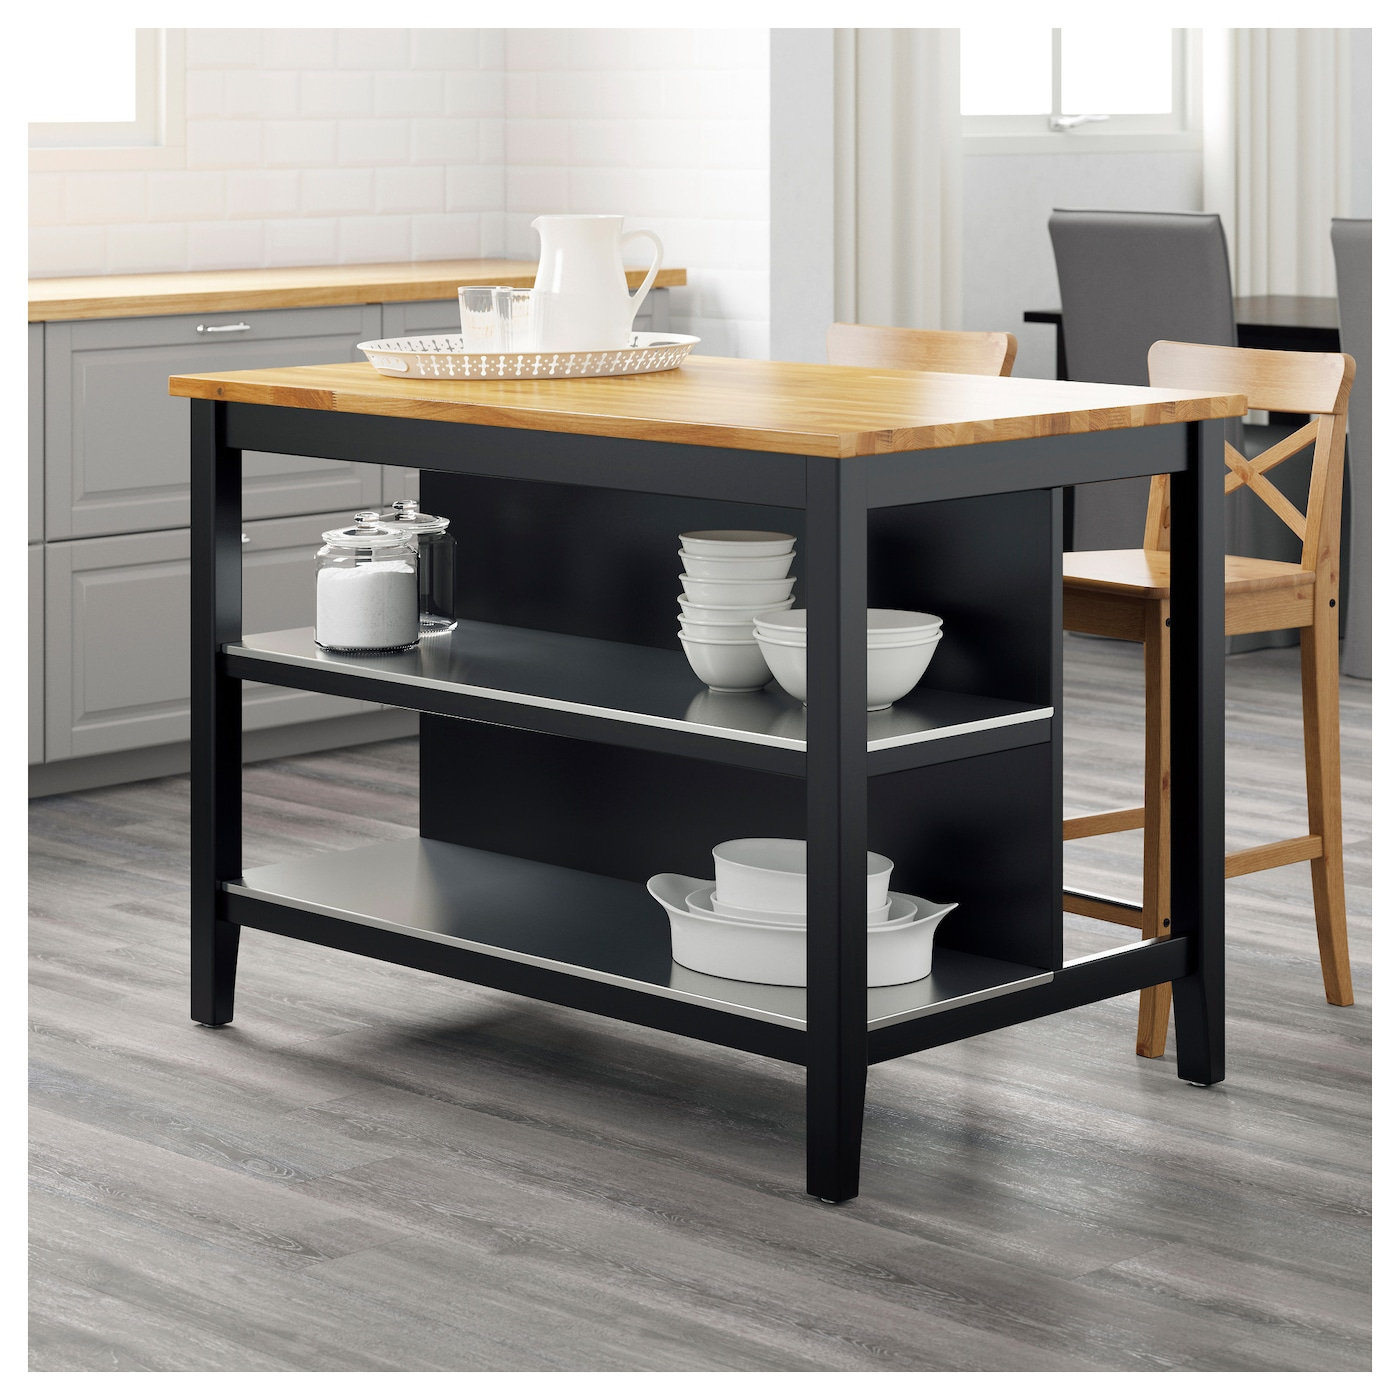 STENSTORP Kitchen Island Black-brown/oak 126 X 79 Cm